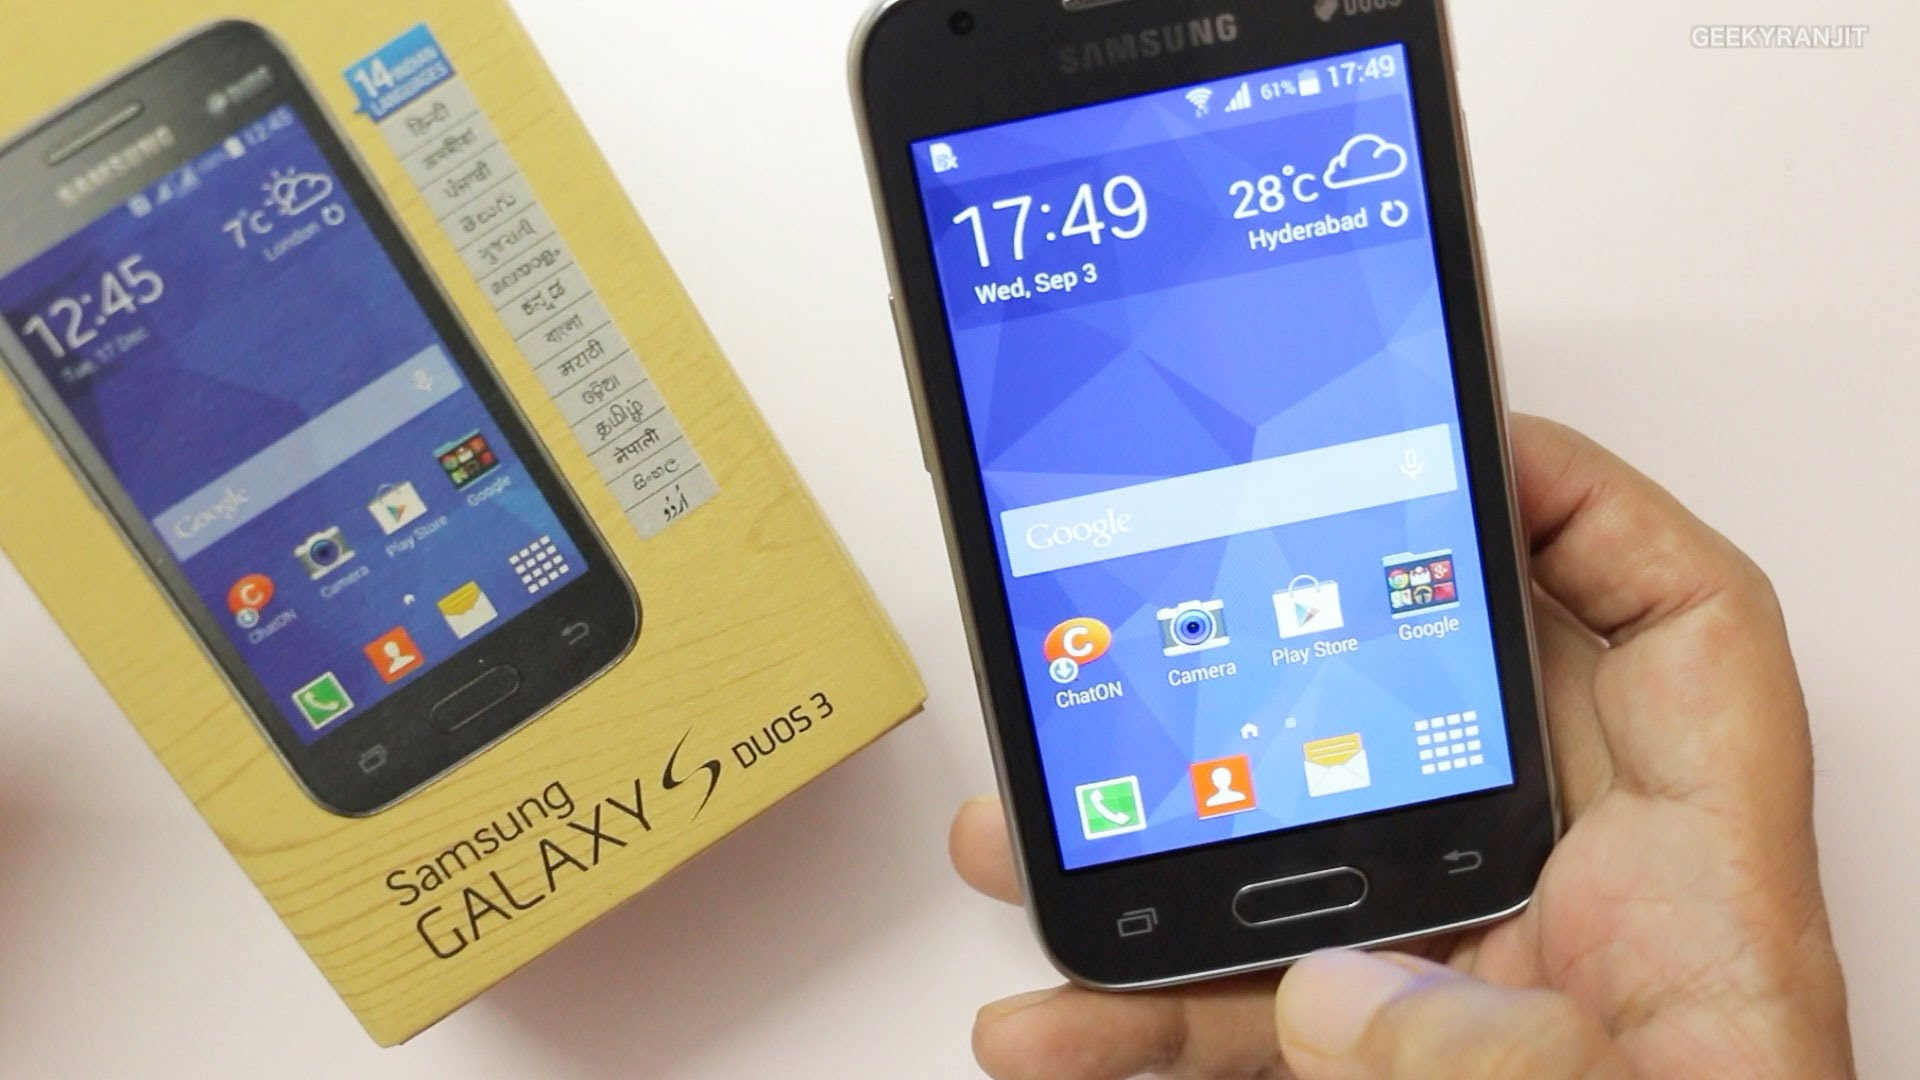 Samsung Galaxy S Duos 3 specifications